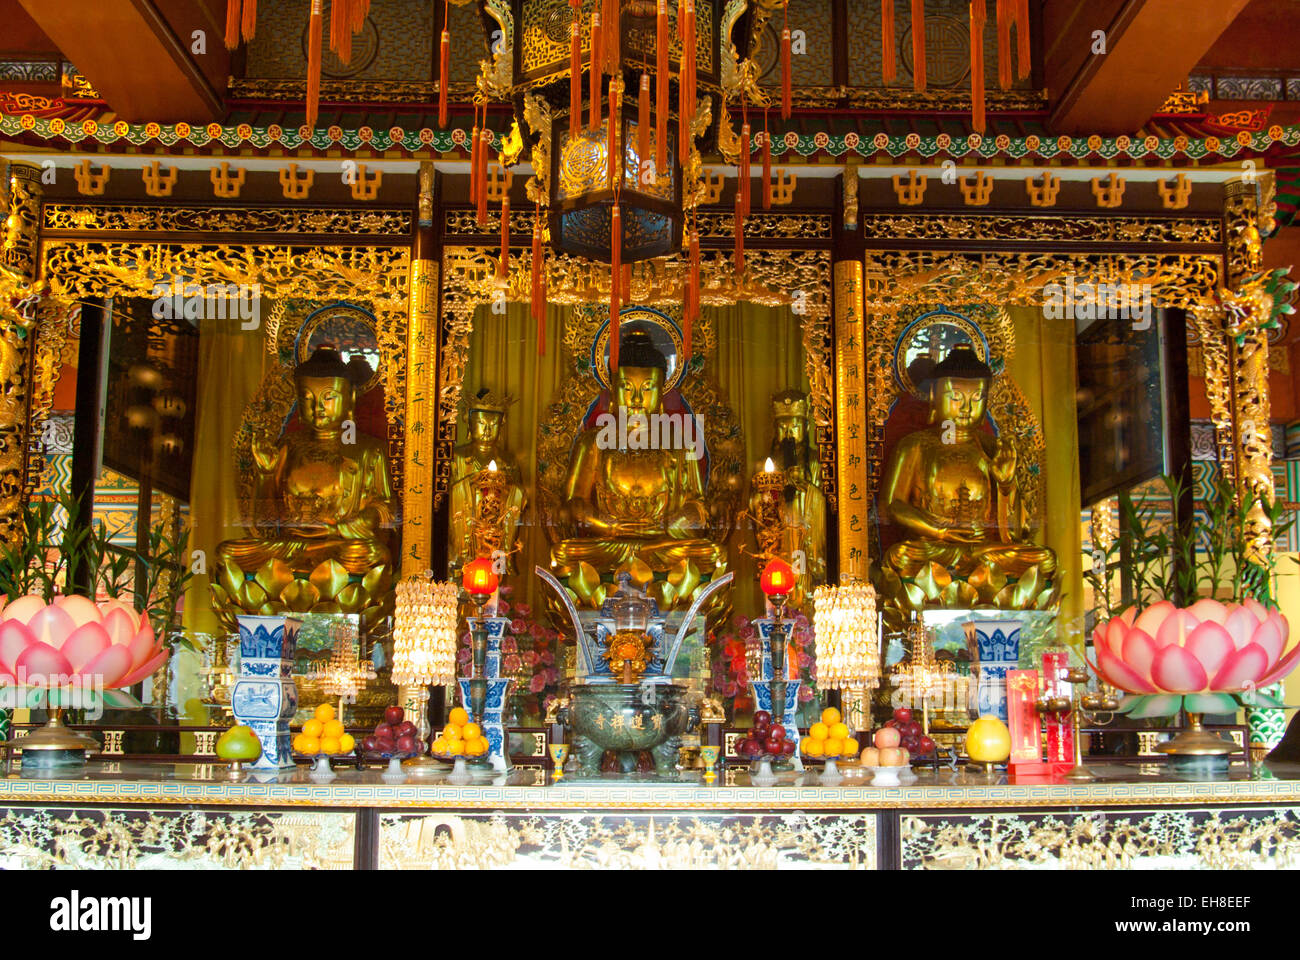 Altar in Chinese Buddhist Po Lin Temple on Lantau Island, Hong Kong - Stock Image